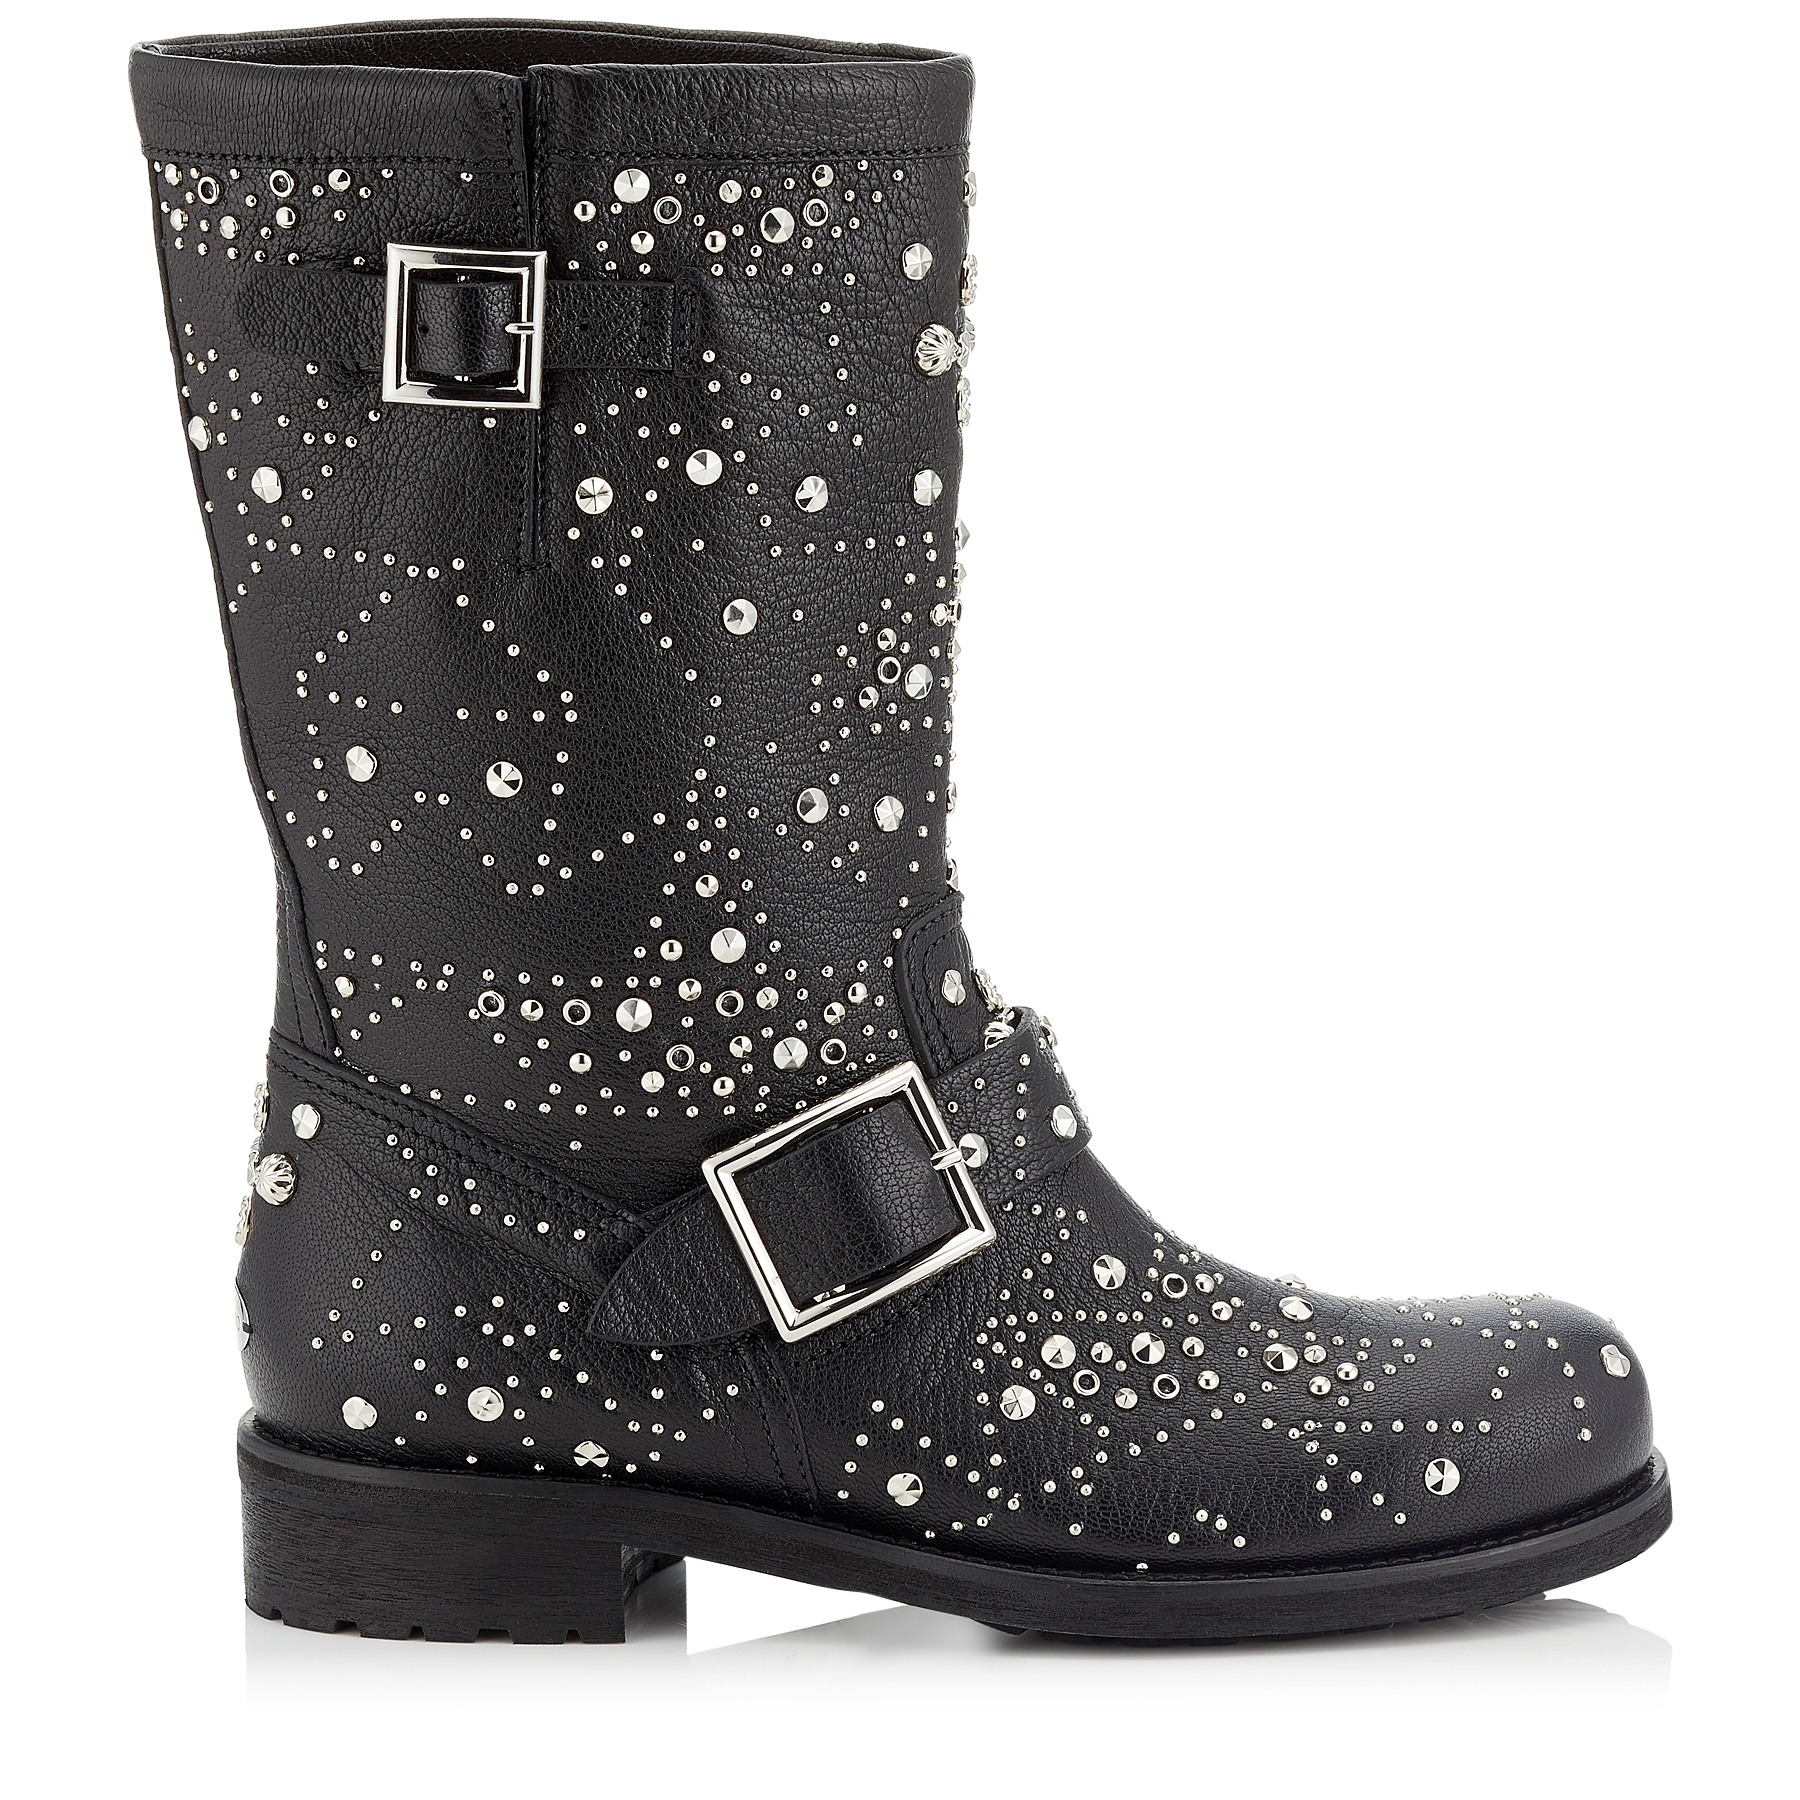 BIKER Black Leather Biker Boots with Graphic Star Studded Embellishment by Jimmy Choo